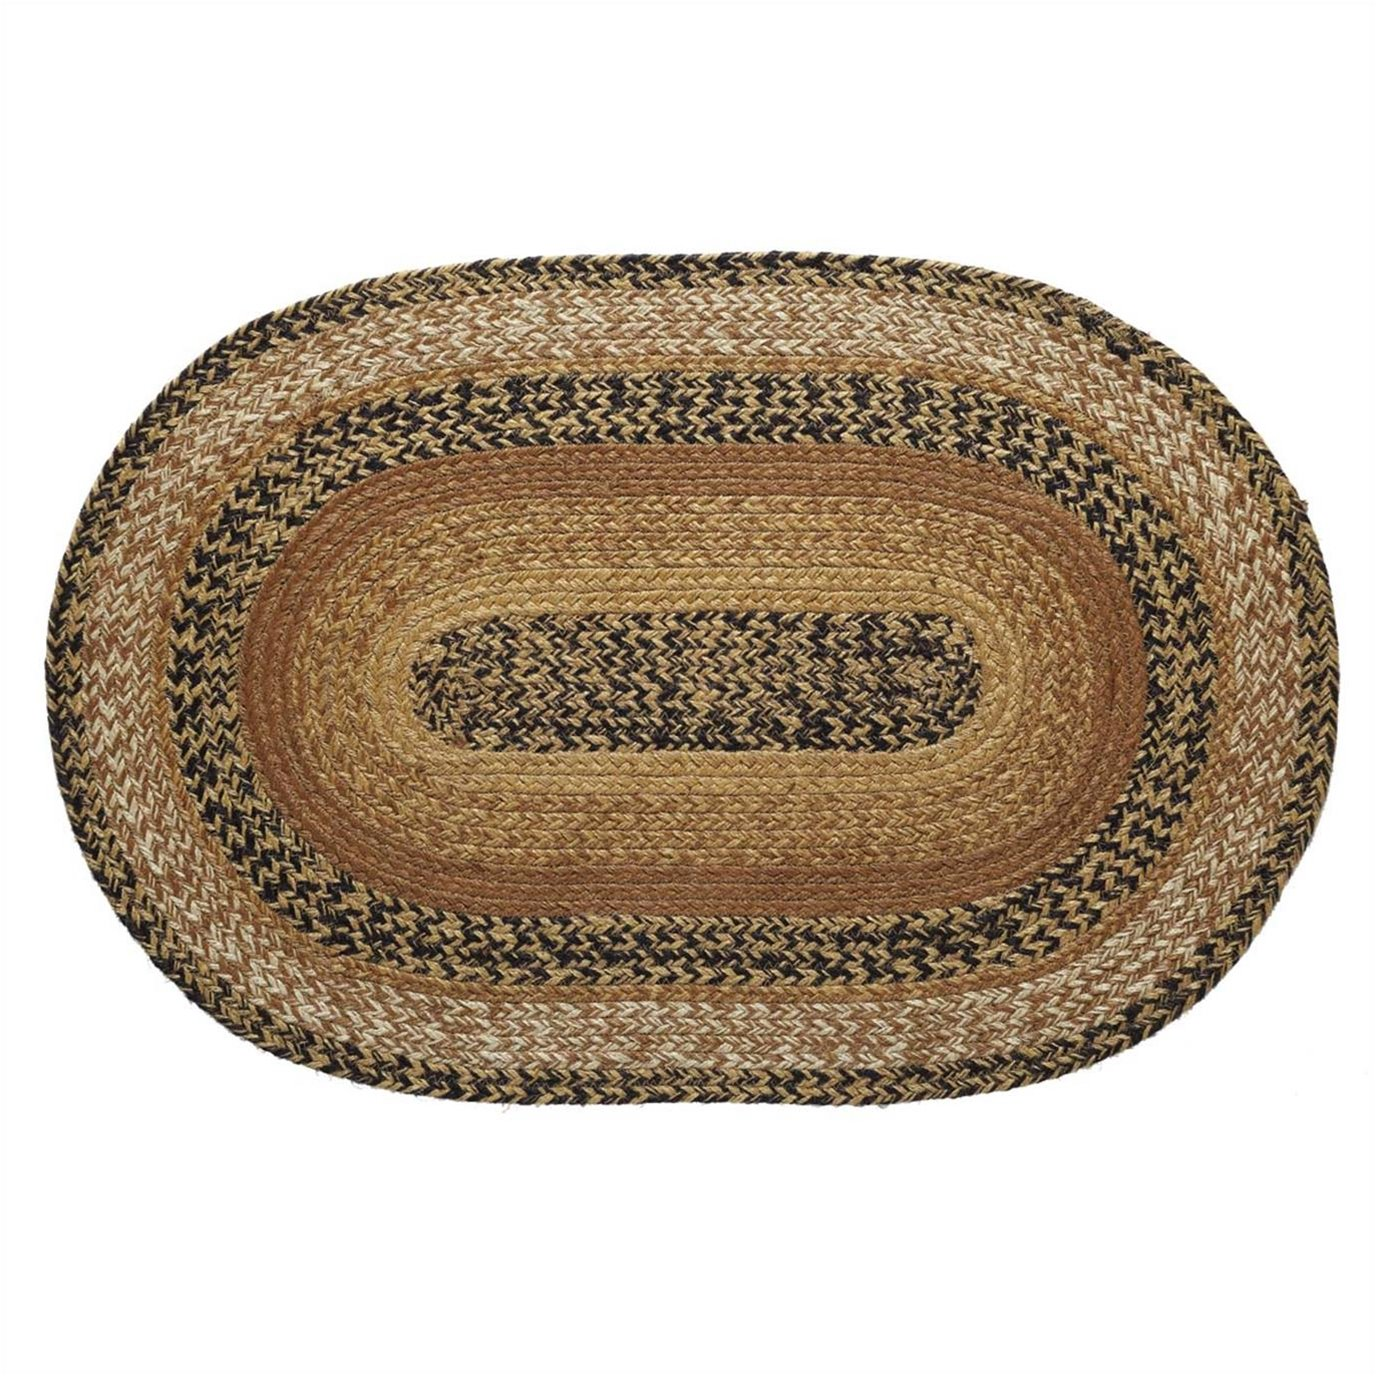 Kettle Grove Jute Rug Oval 20x30